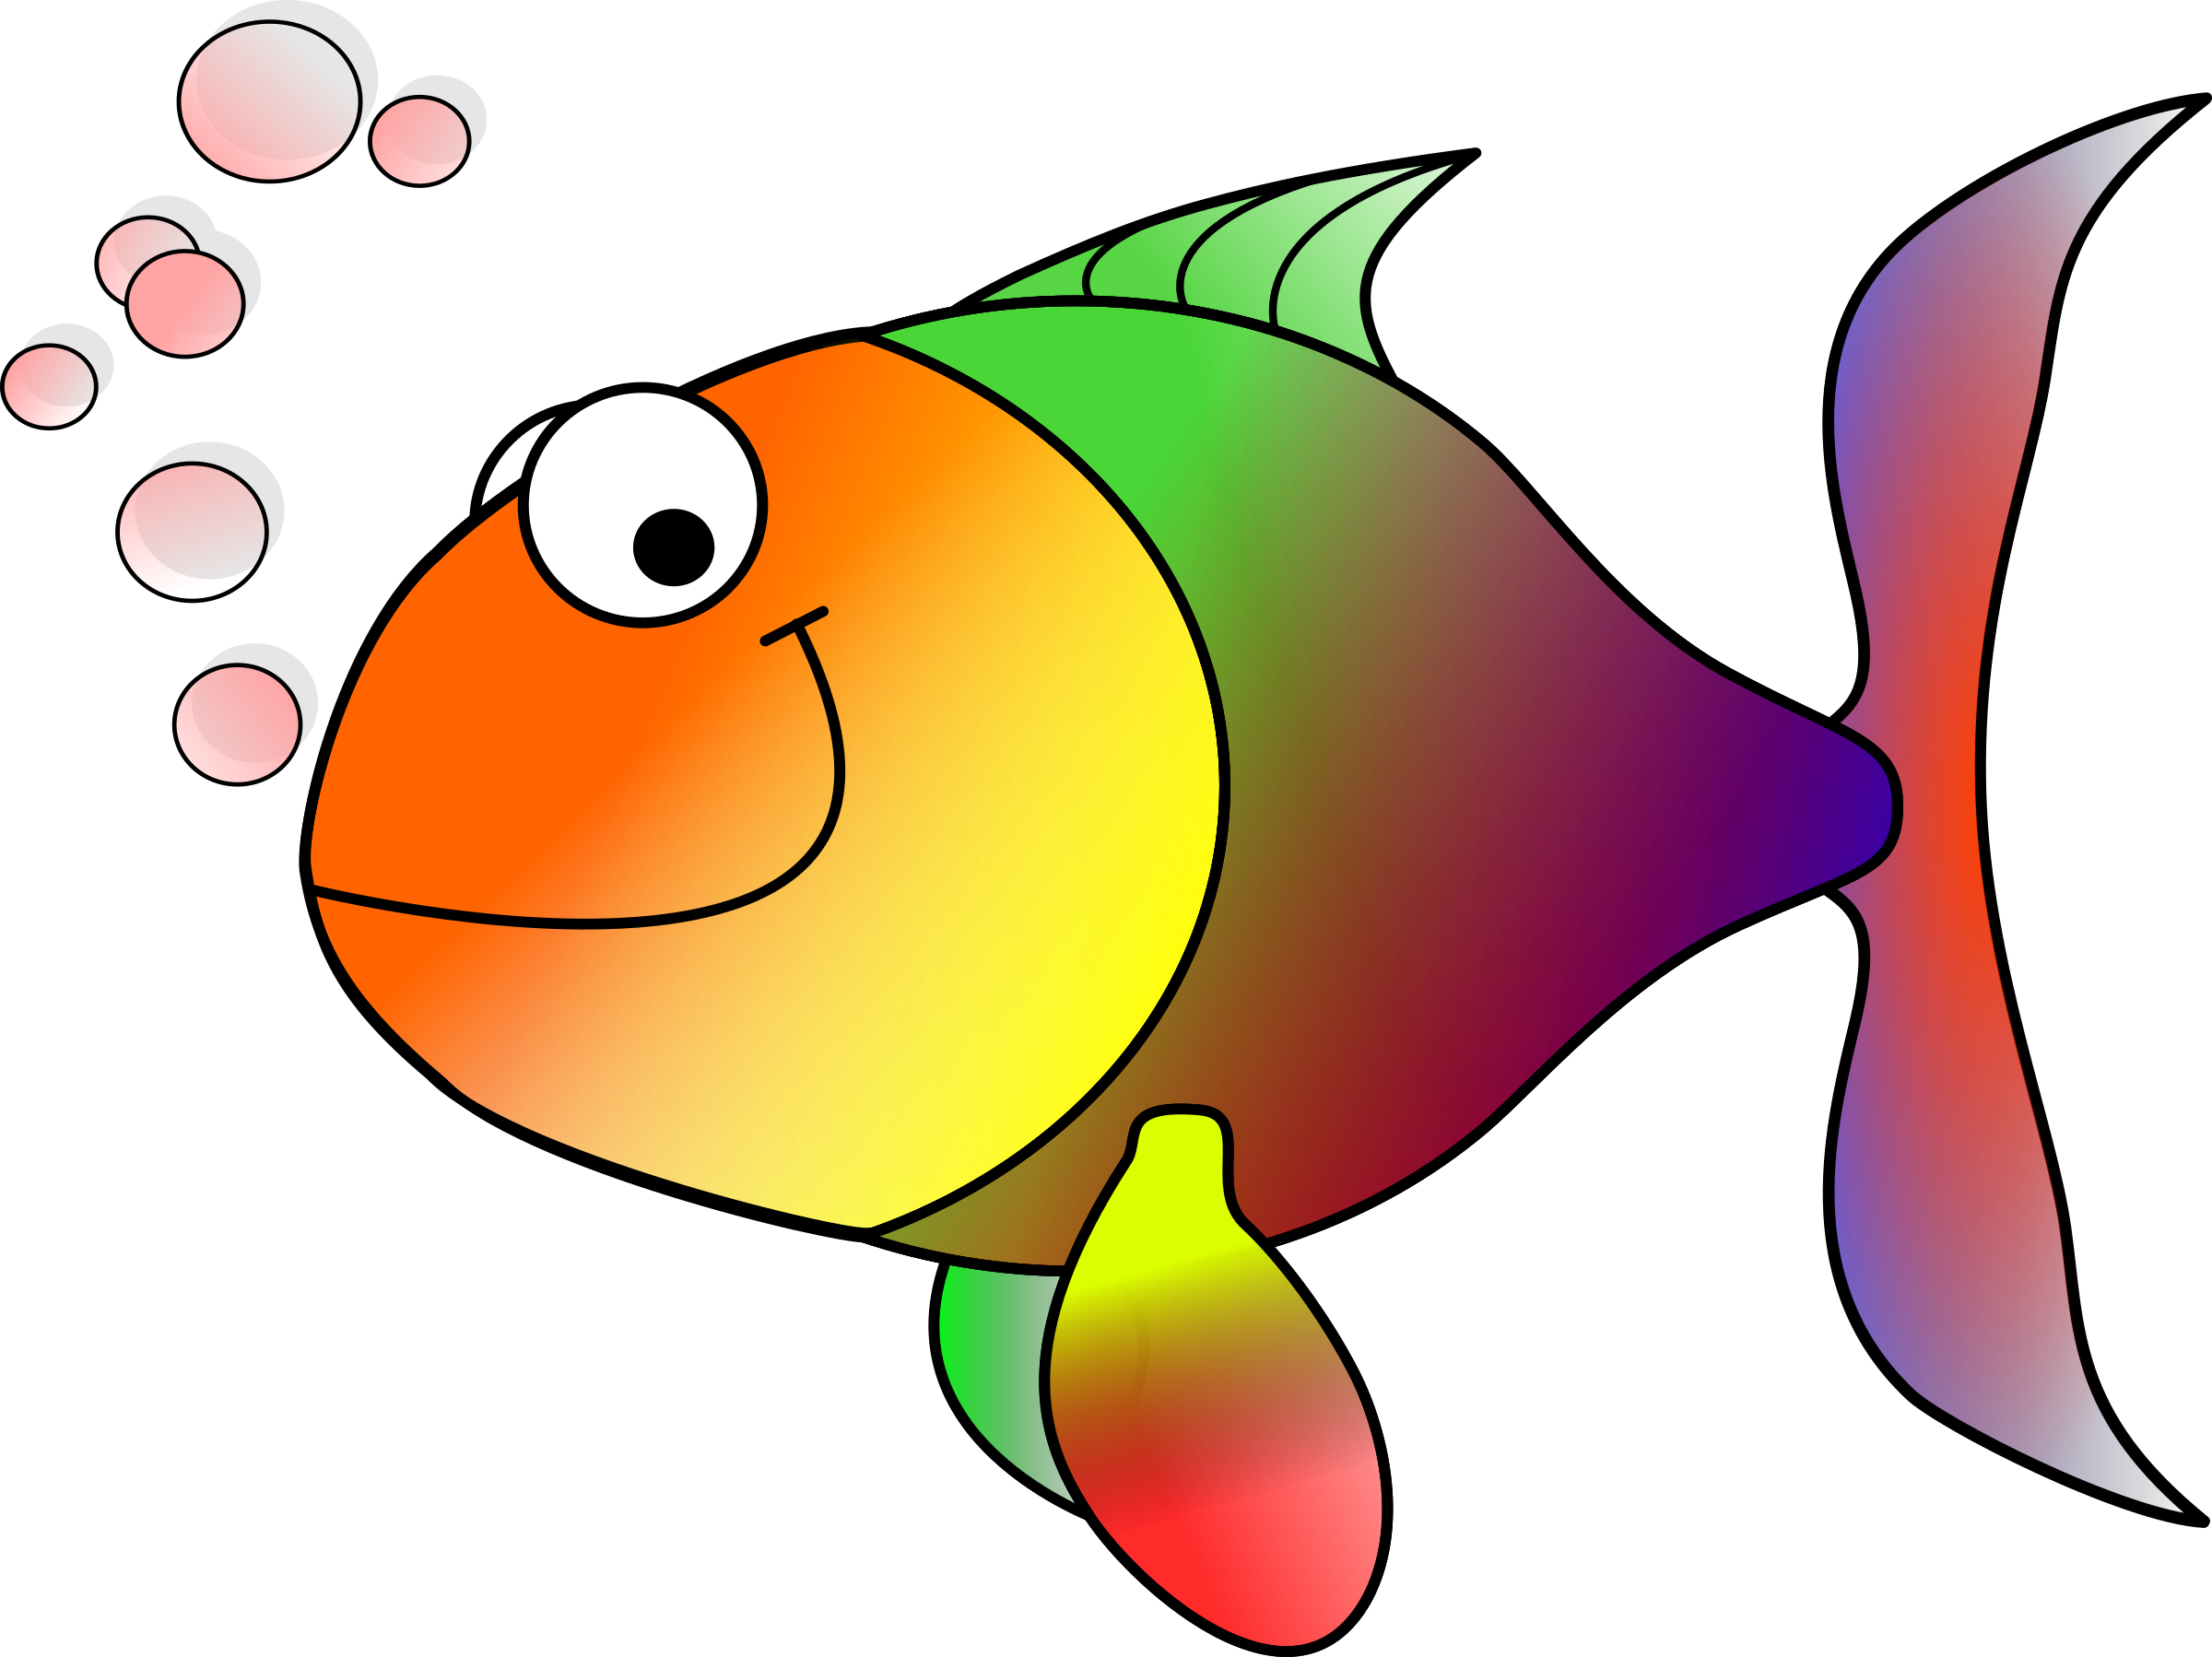 2400x1798 The Fish Shire By @mgriffiths26, A Fish Blowing Bubbles.,